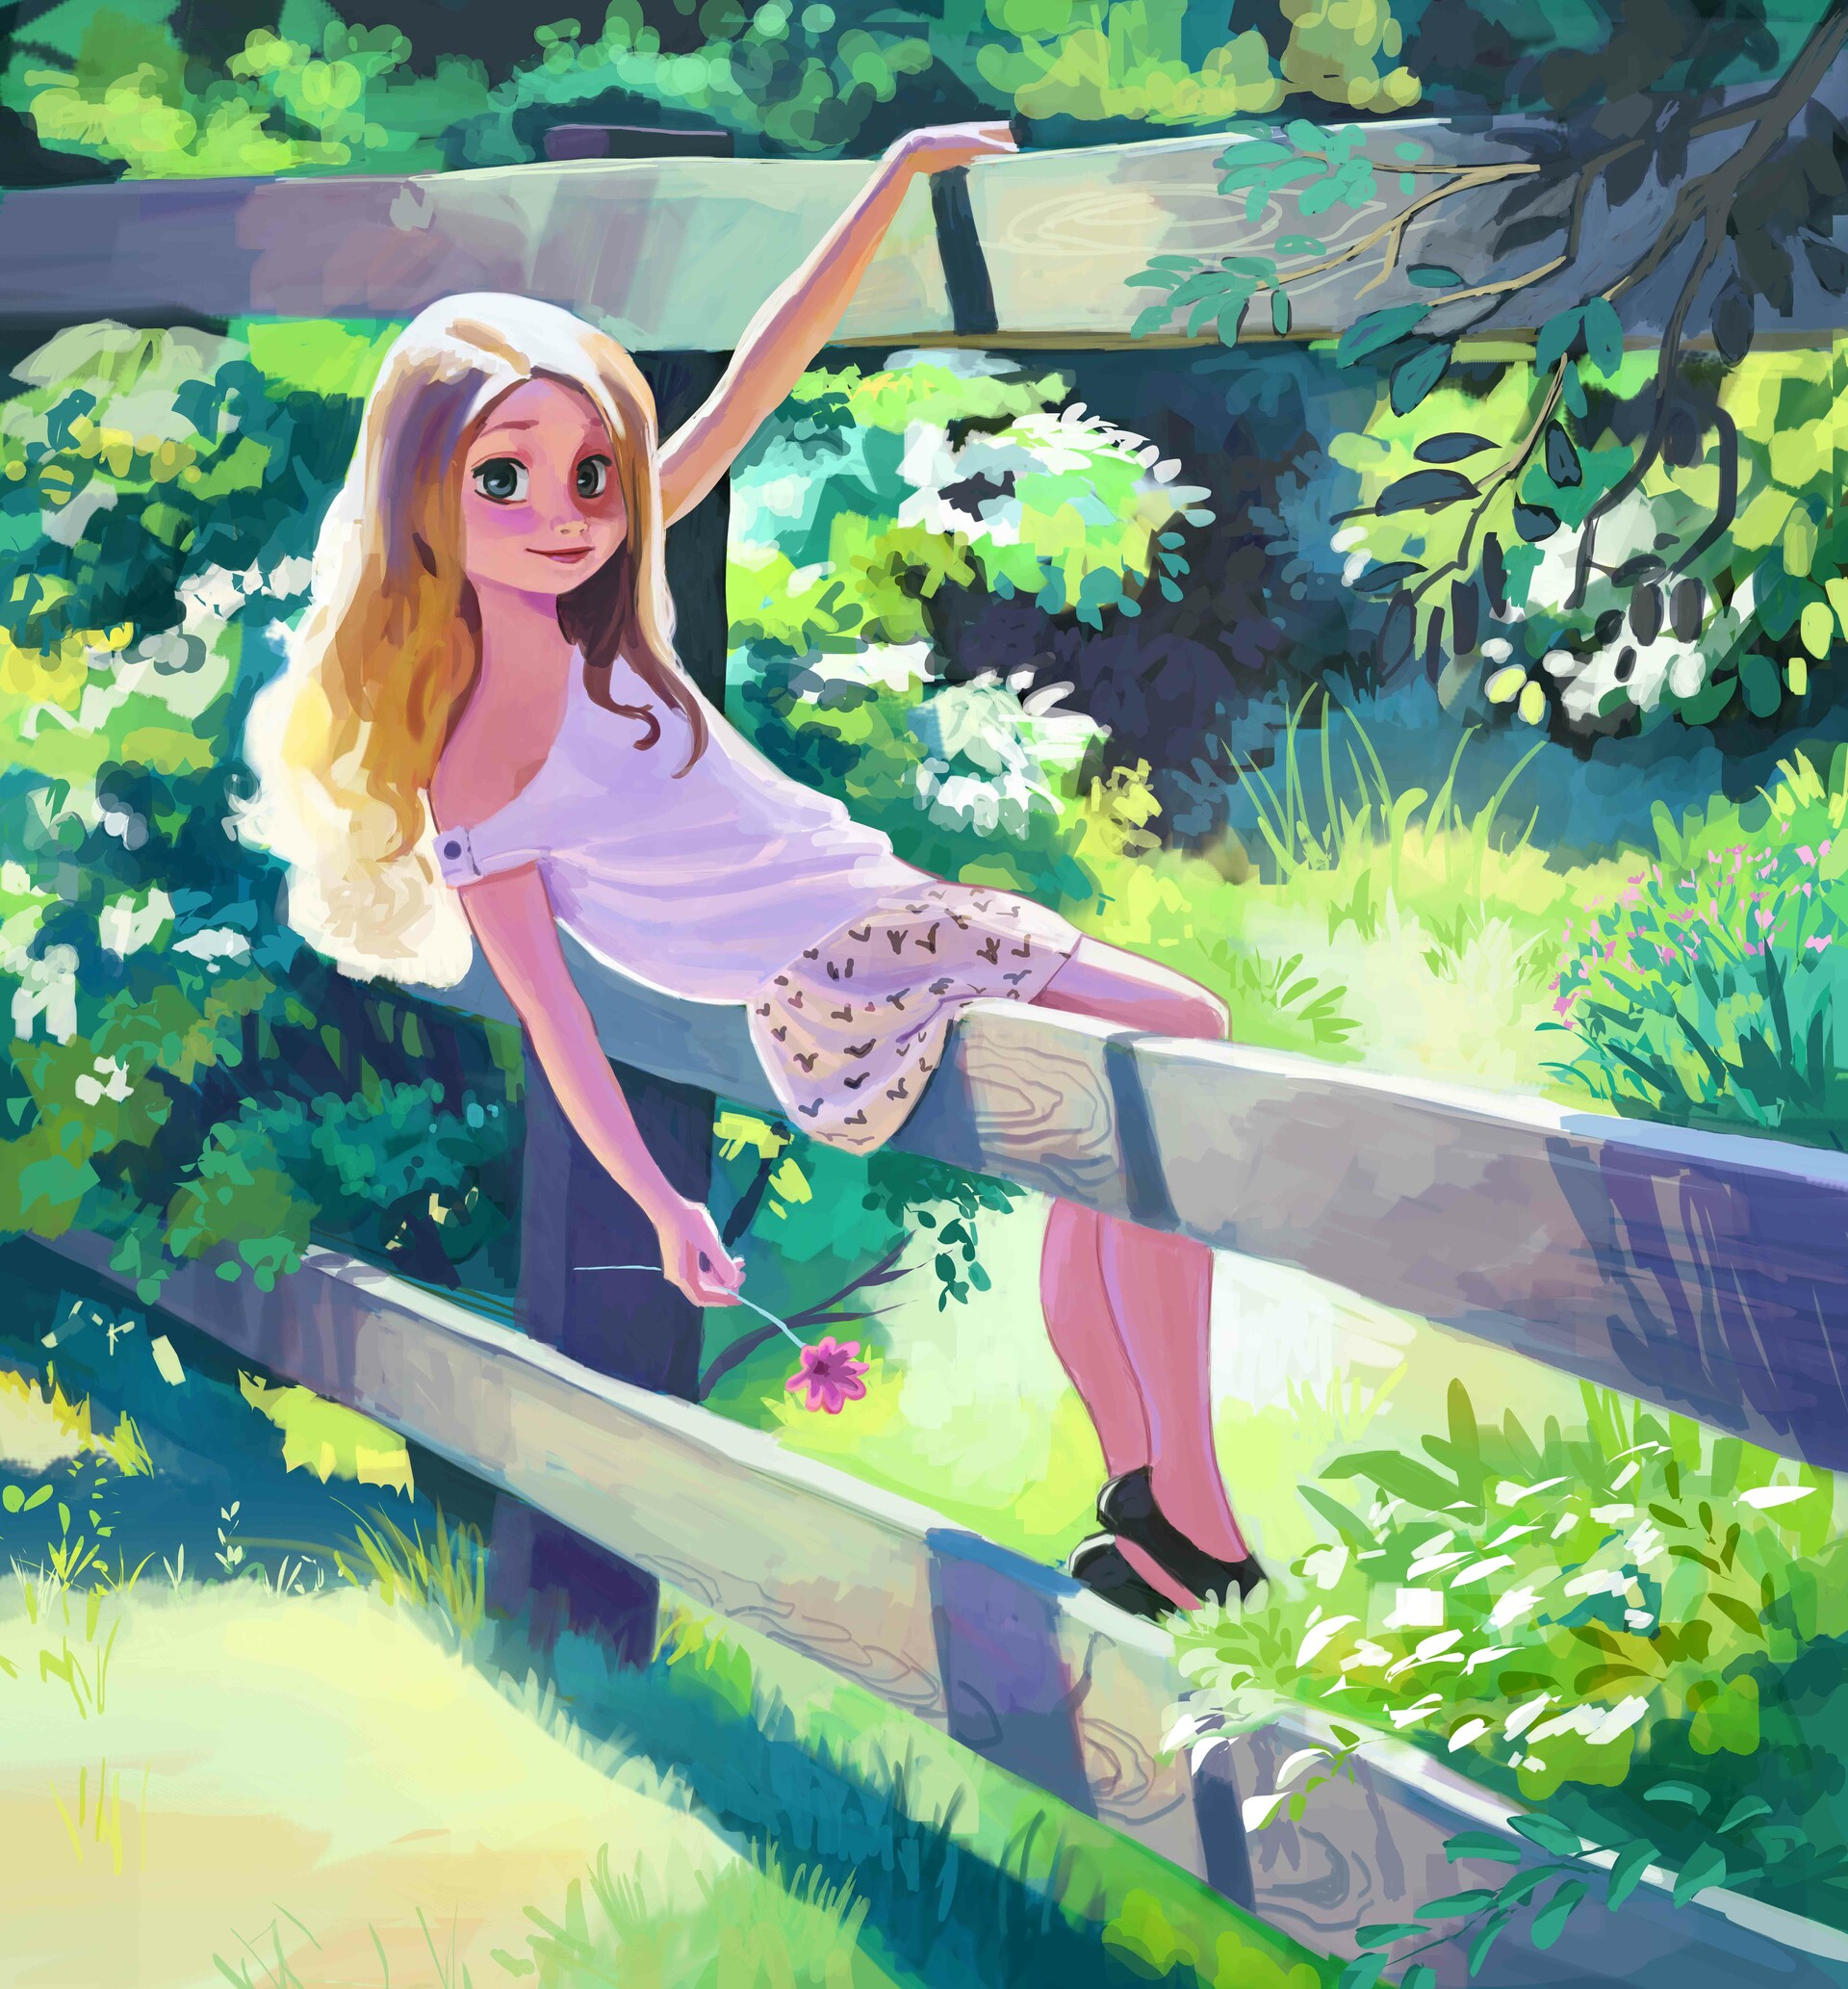 155104 download wallpaper Girl, Art, Summer, Fence, Stroll screensavers and pictures for free